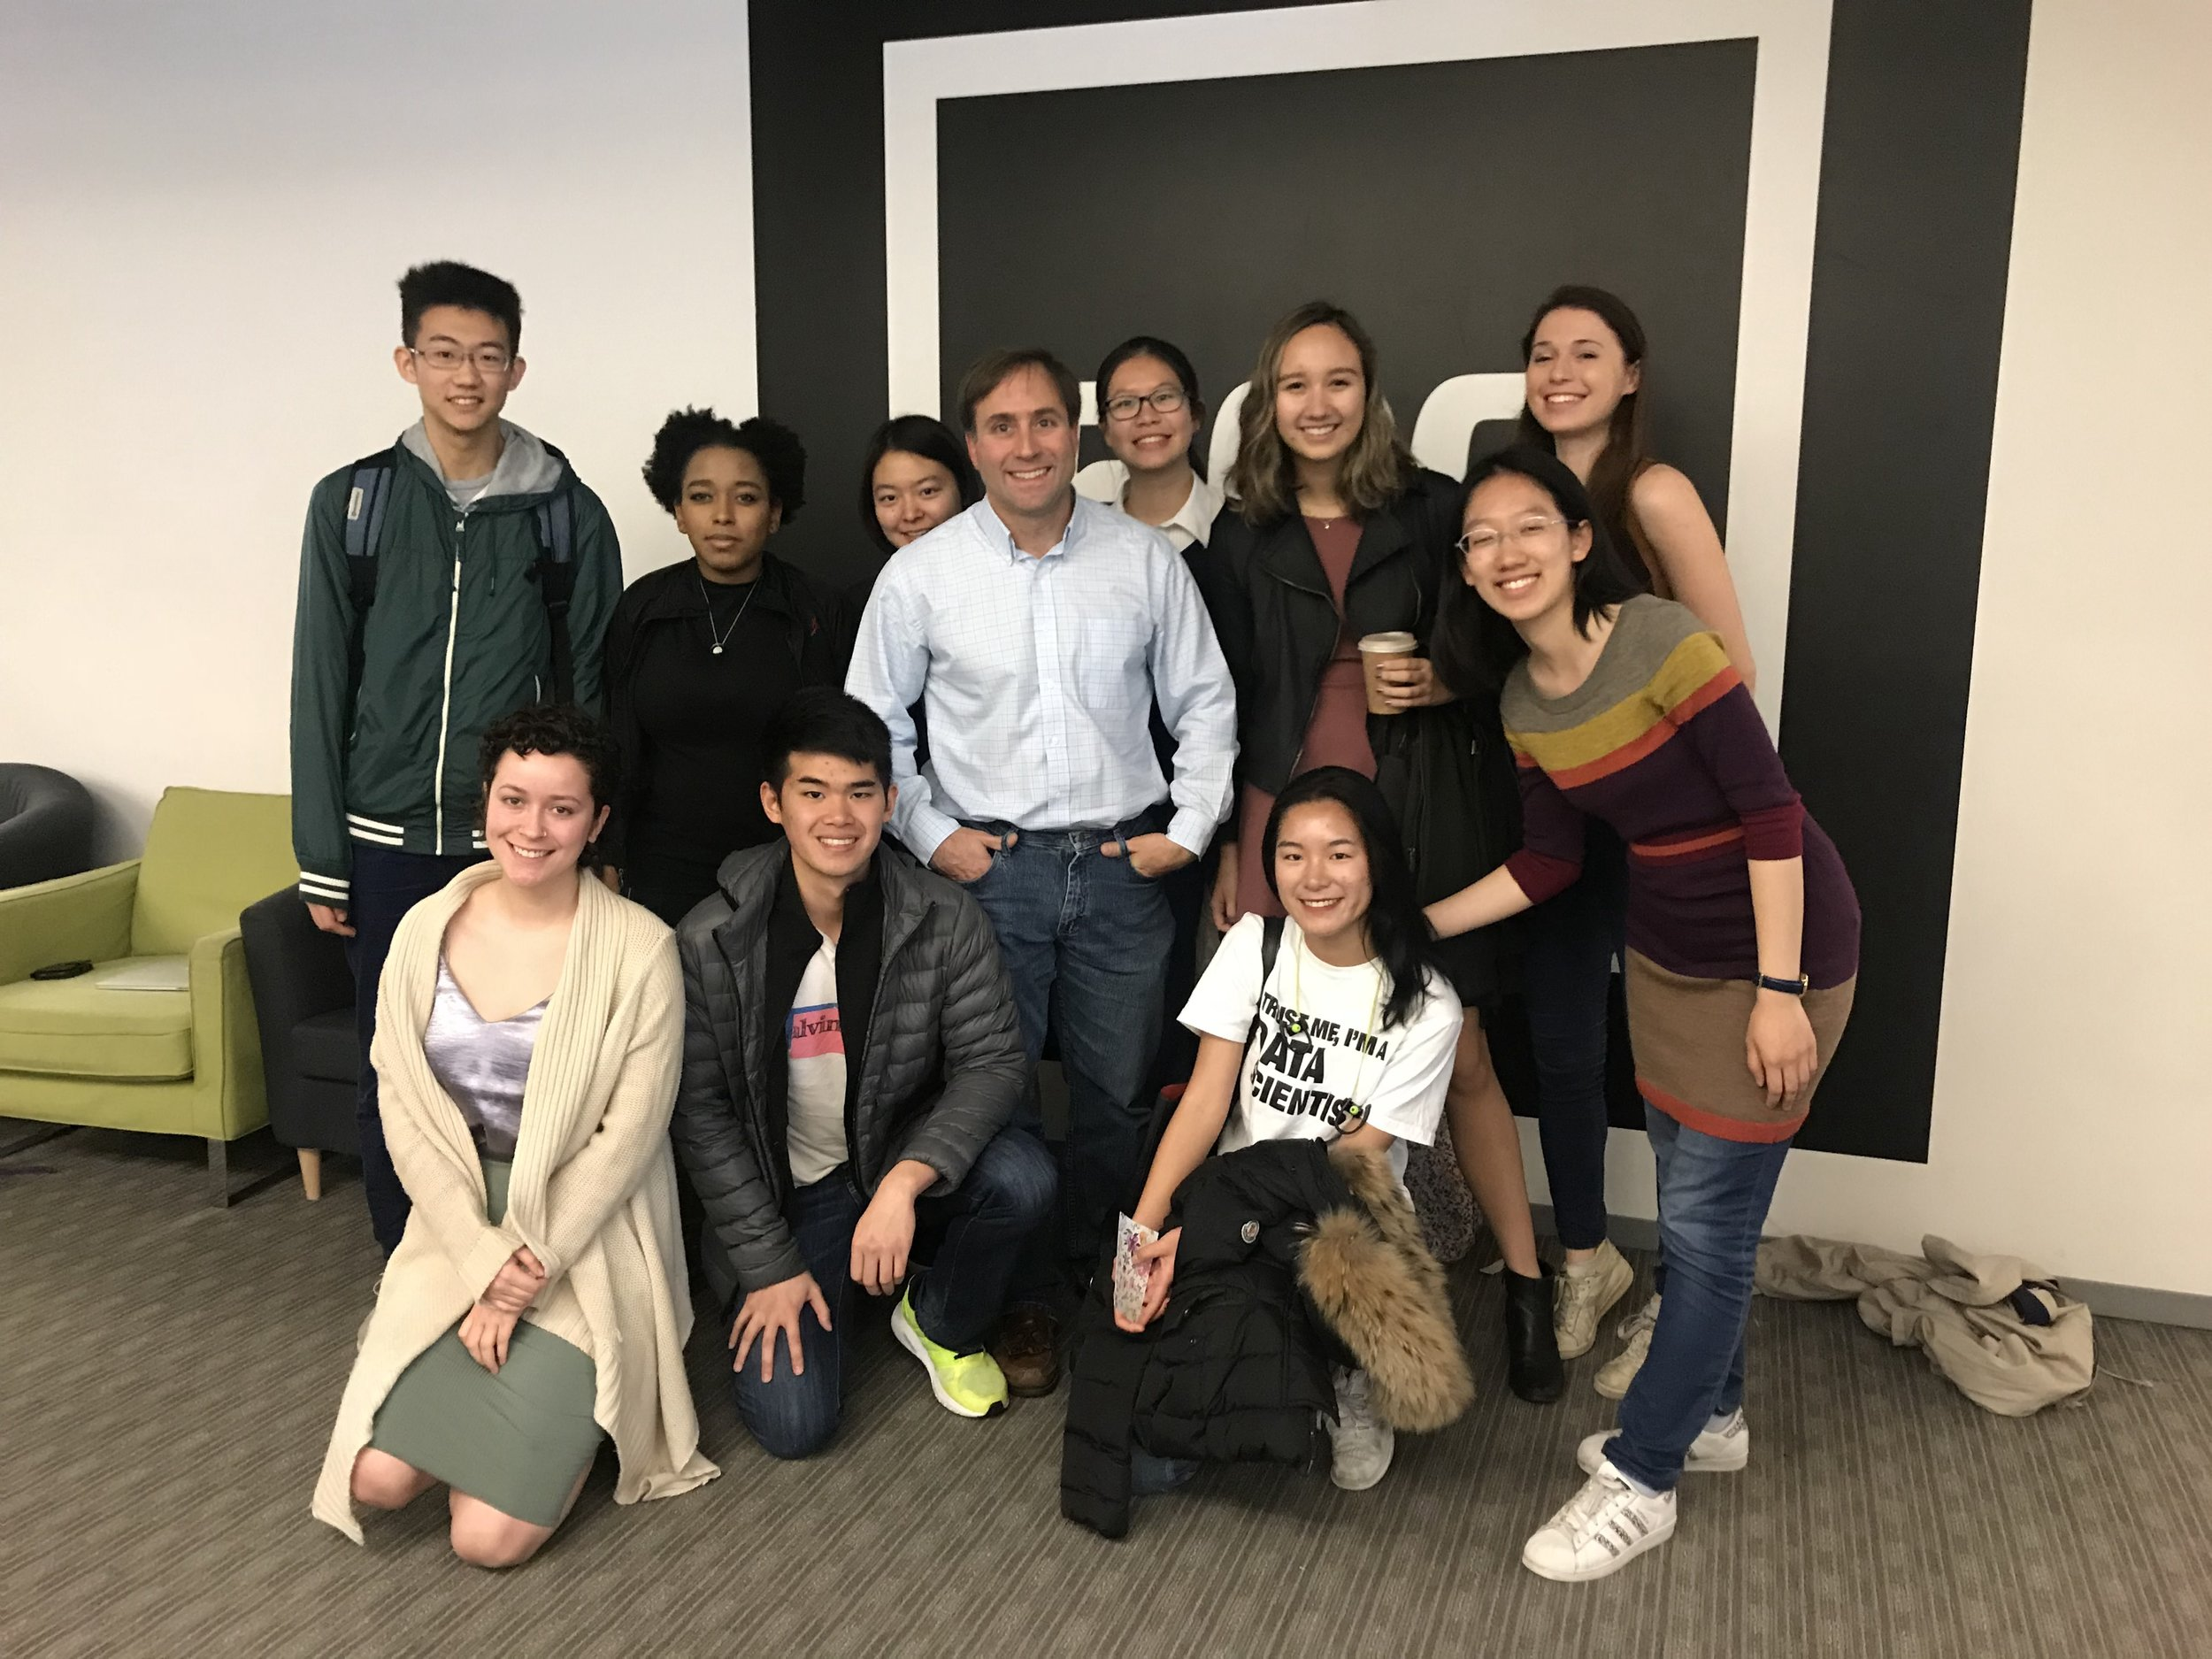 The team from Wes posing in front of the 500 Startups logo with Robert Neivert '90